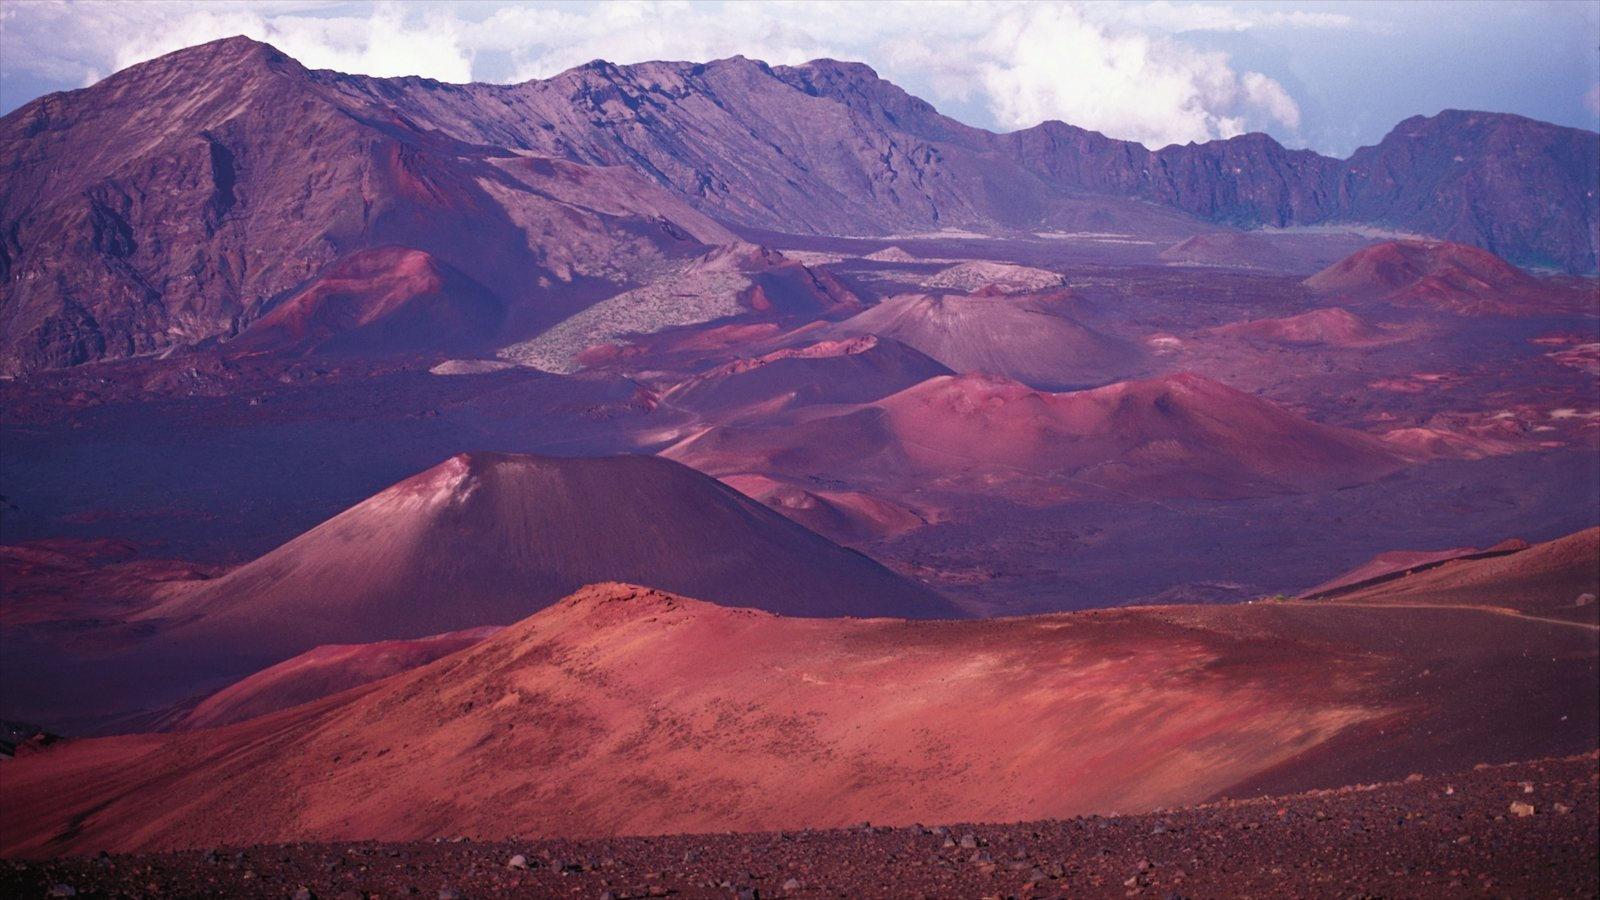 Haleakala Crater which includes tranquil scenes, mountains and landscape views